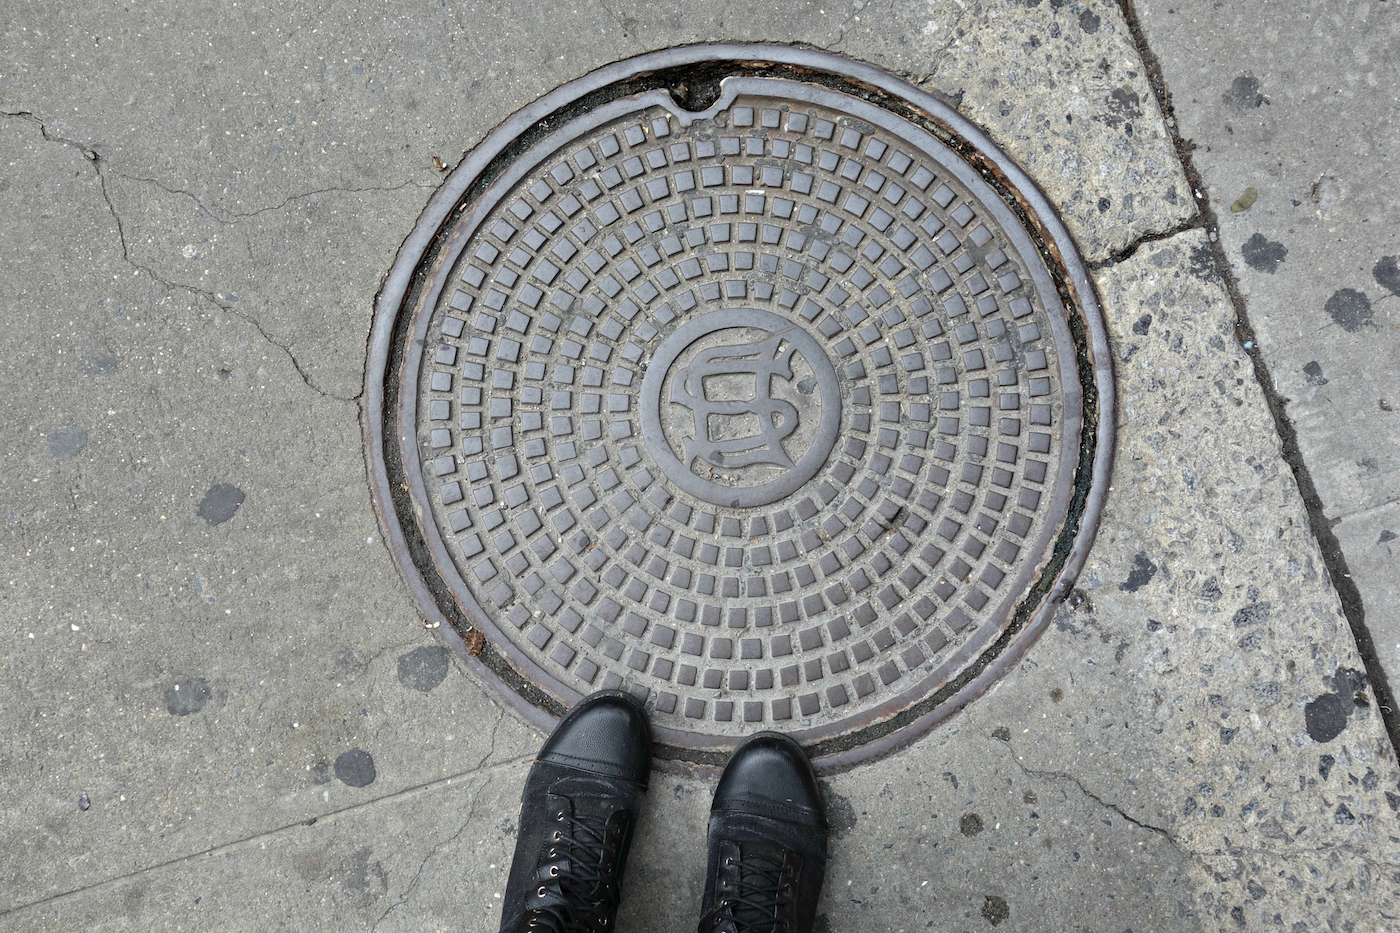 Old Electrical Wiring Manhole Worksheet And Diagram Oldelectricalwiringtypes Types The Well Trodden Art Of Cover In New York City Rh Hyperallergic Com Cloth